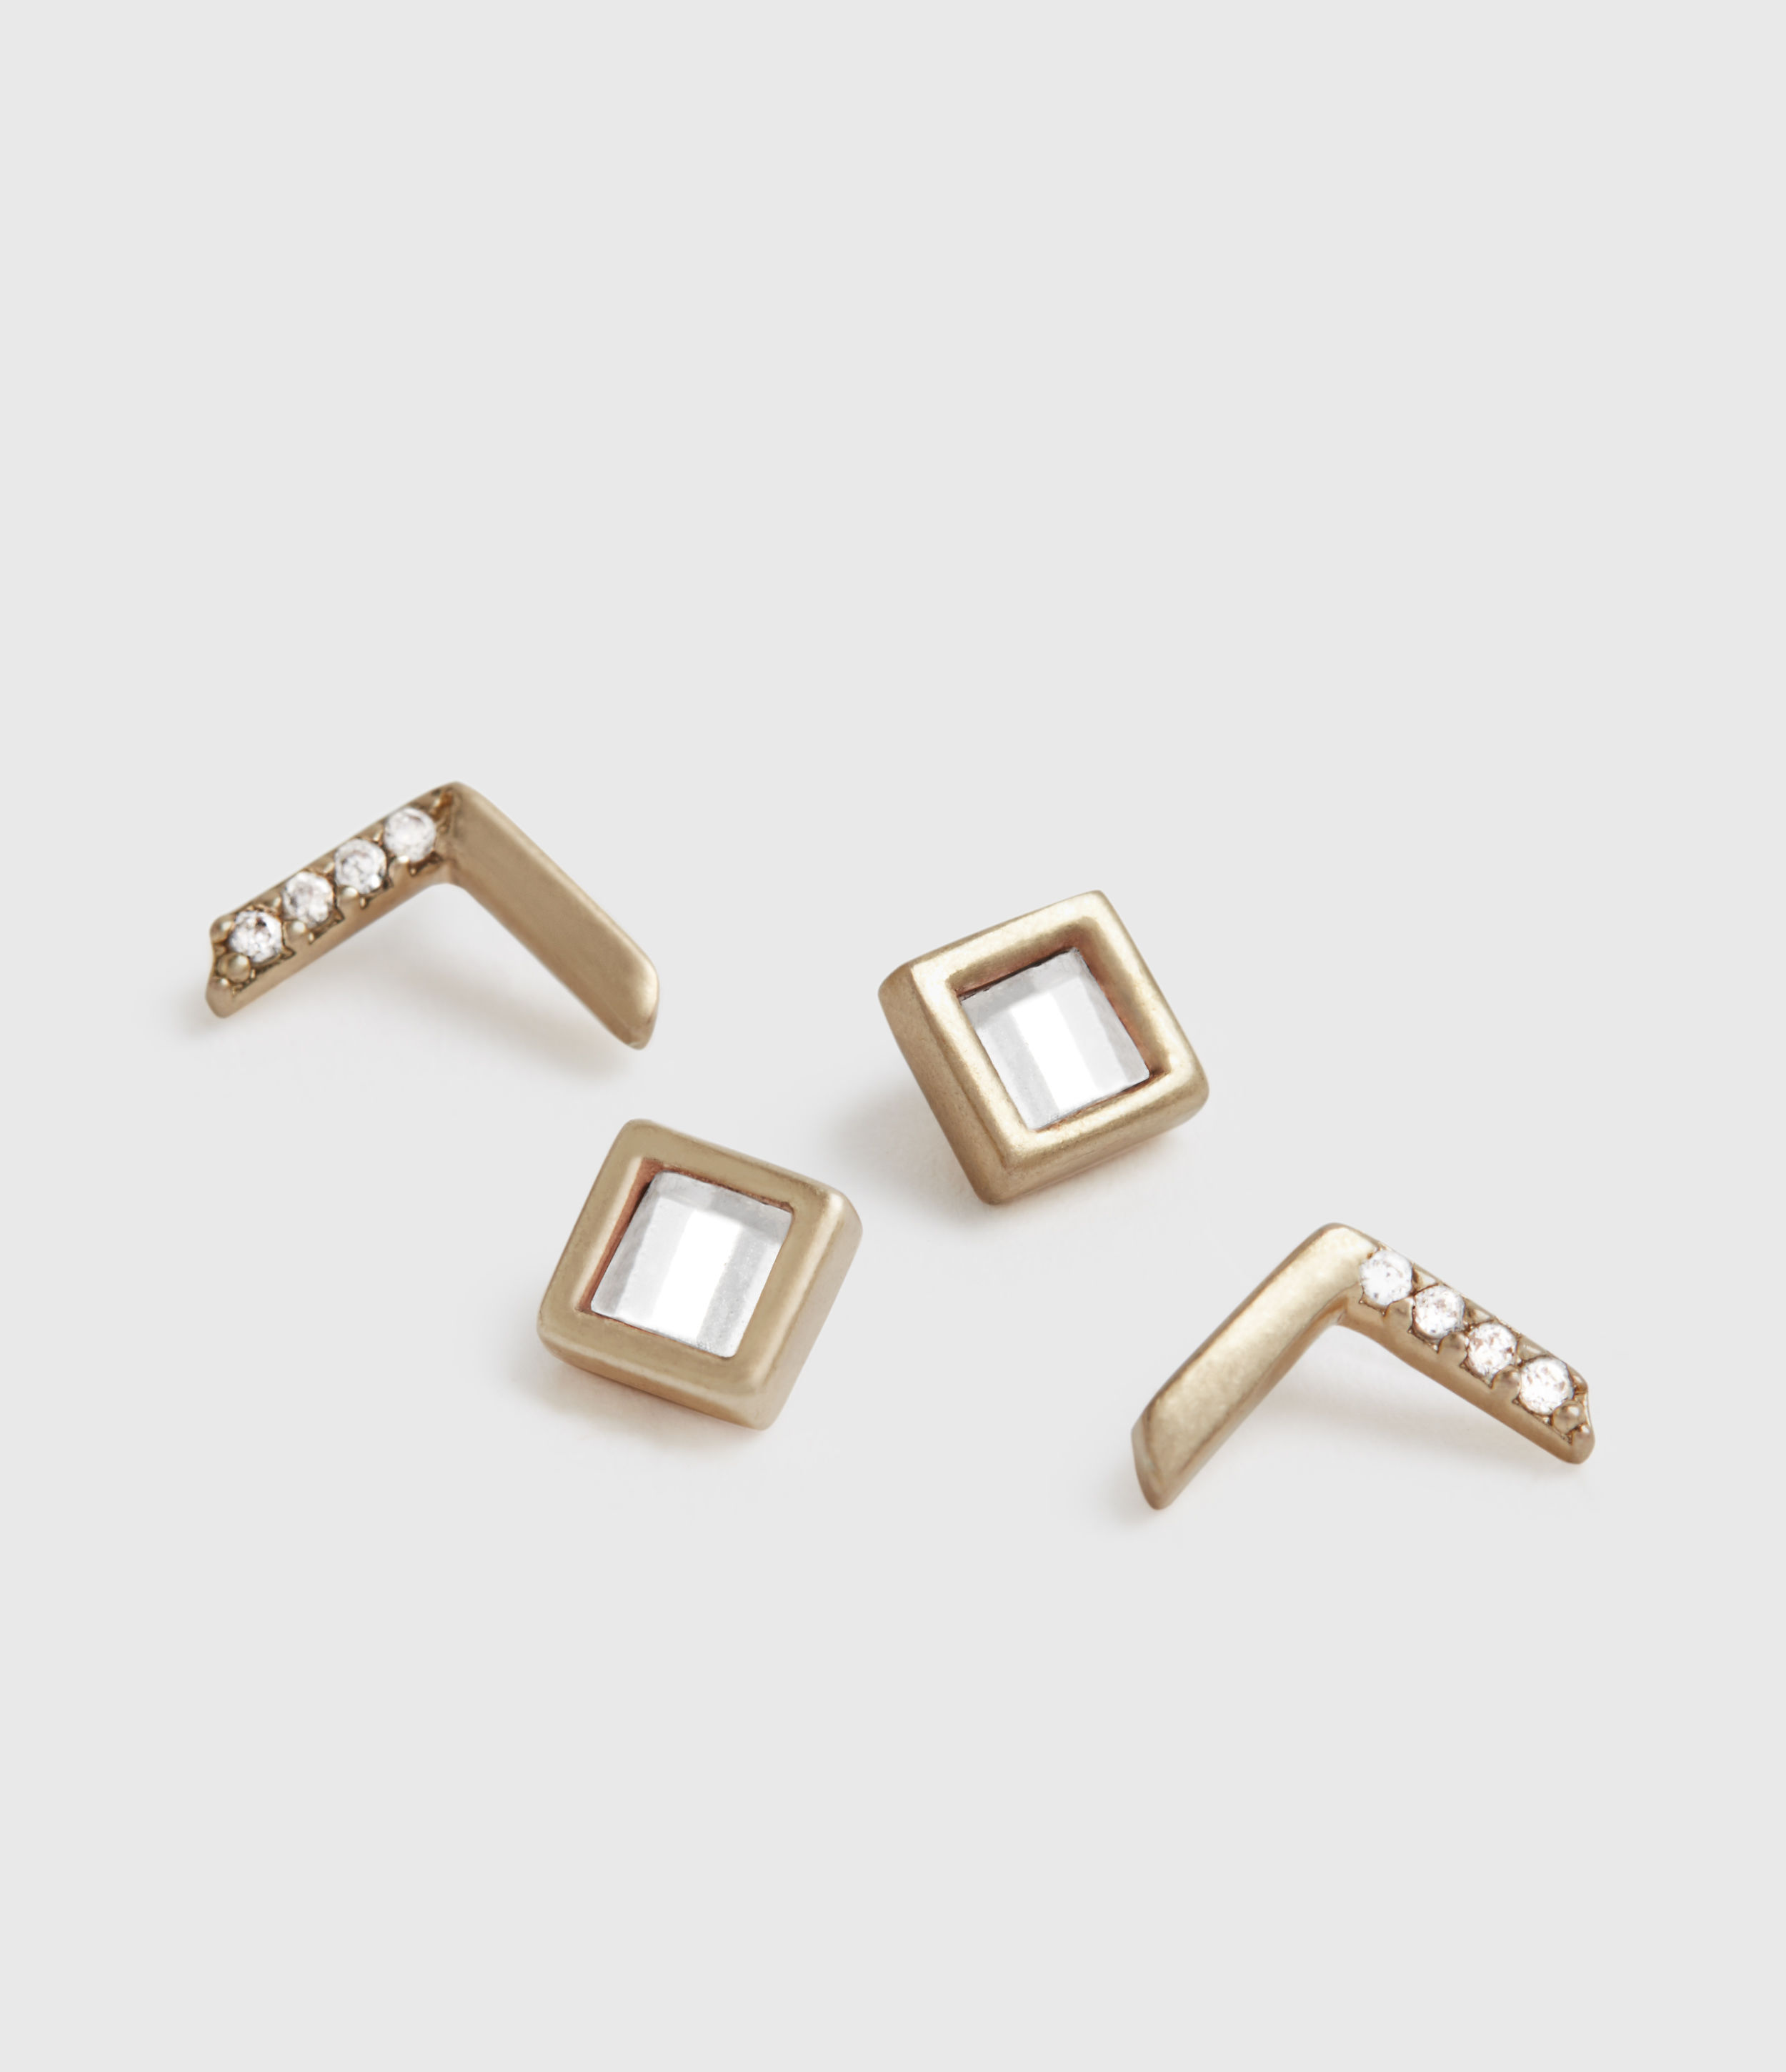 AllSaints Arrow Gold-Tone Stud Earring Set